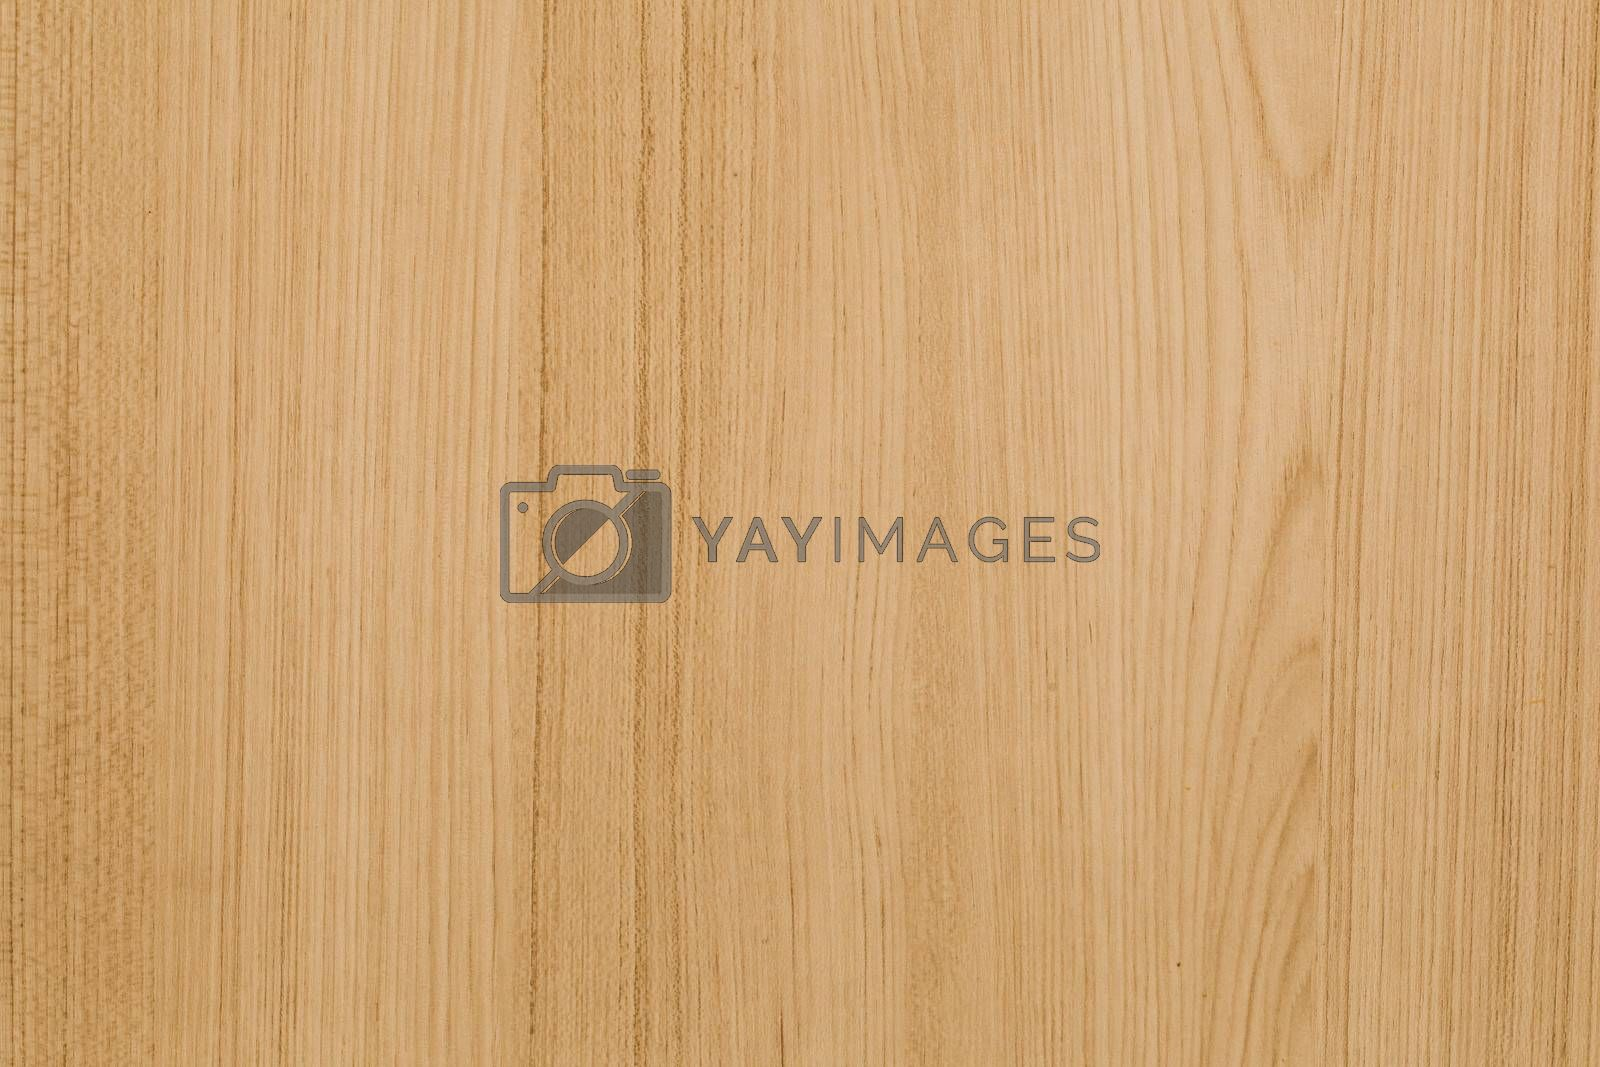 A close-up image of a wooden texture background. Check out other textures in my portfolio.